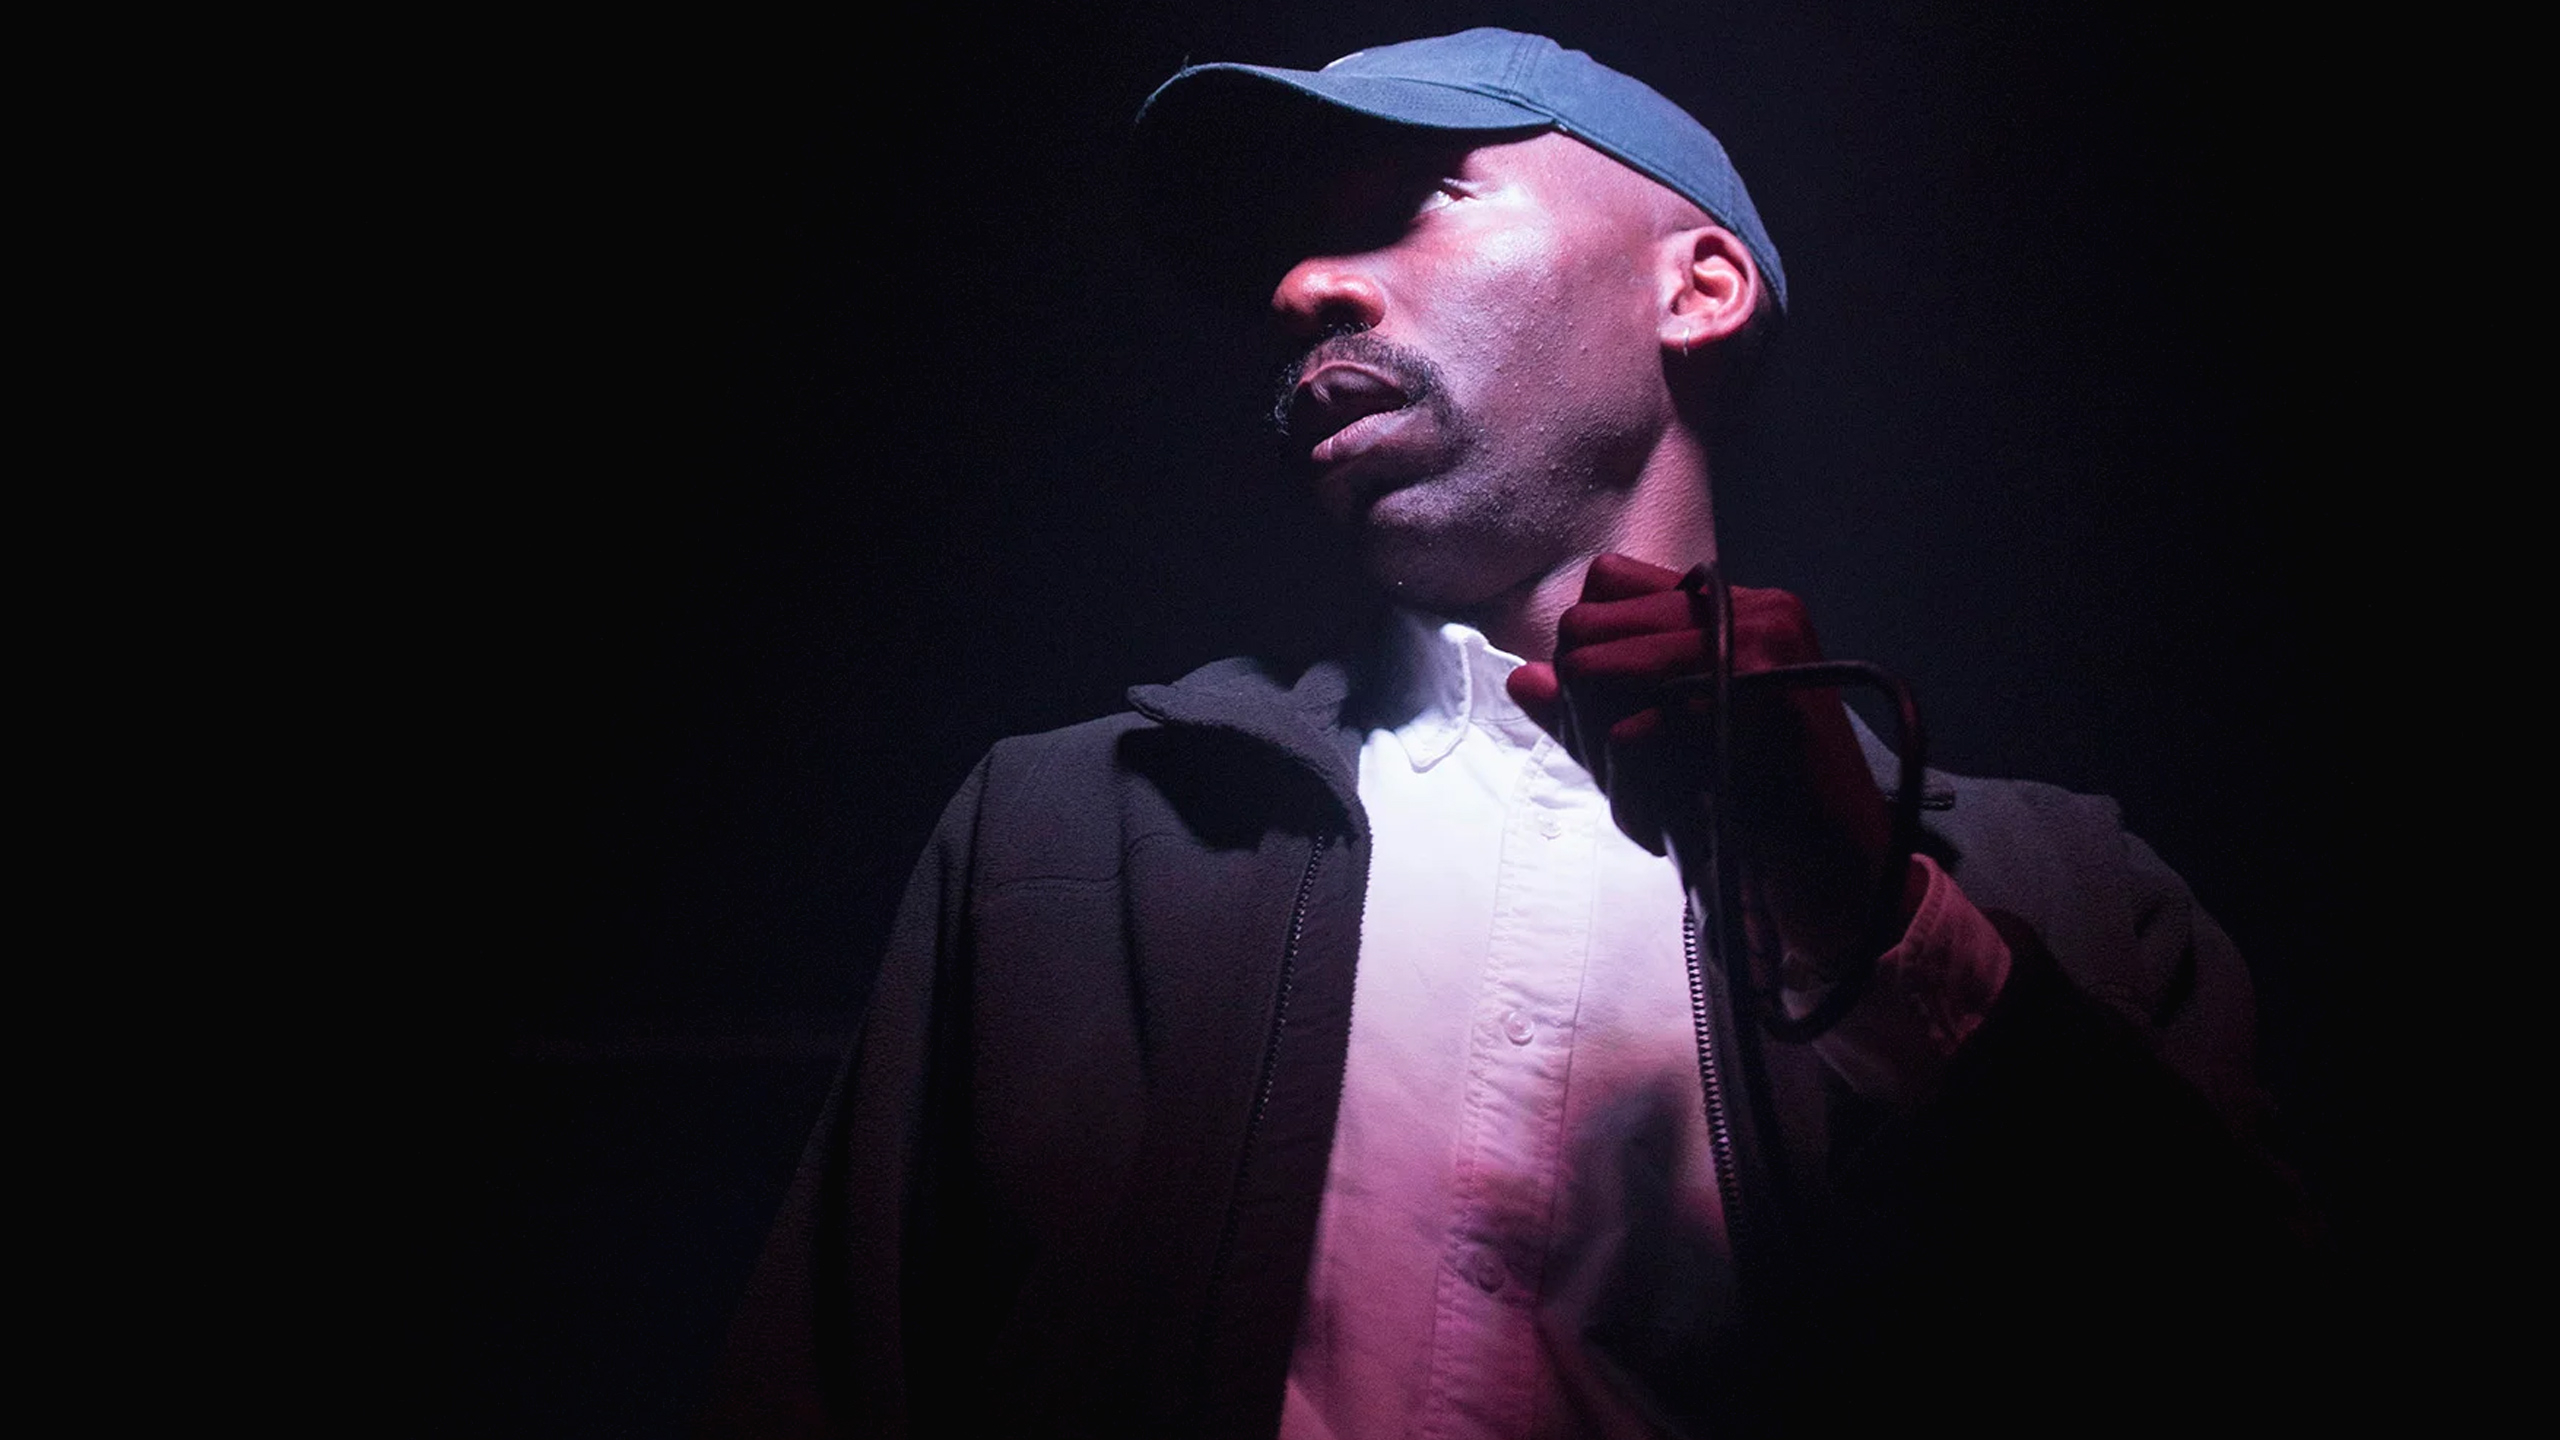 Cover image for Dean Blunt